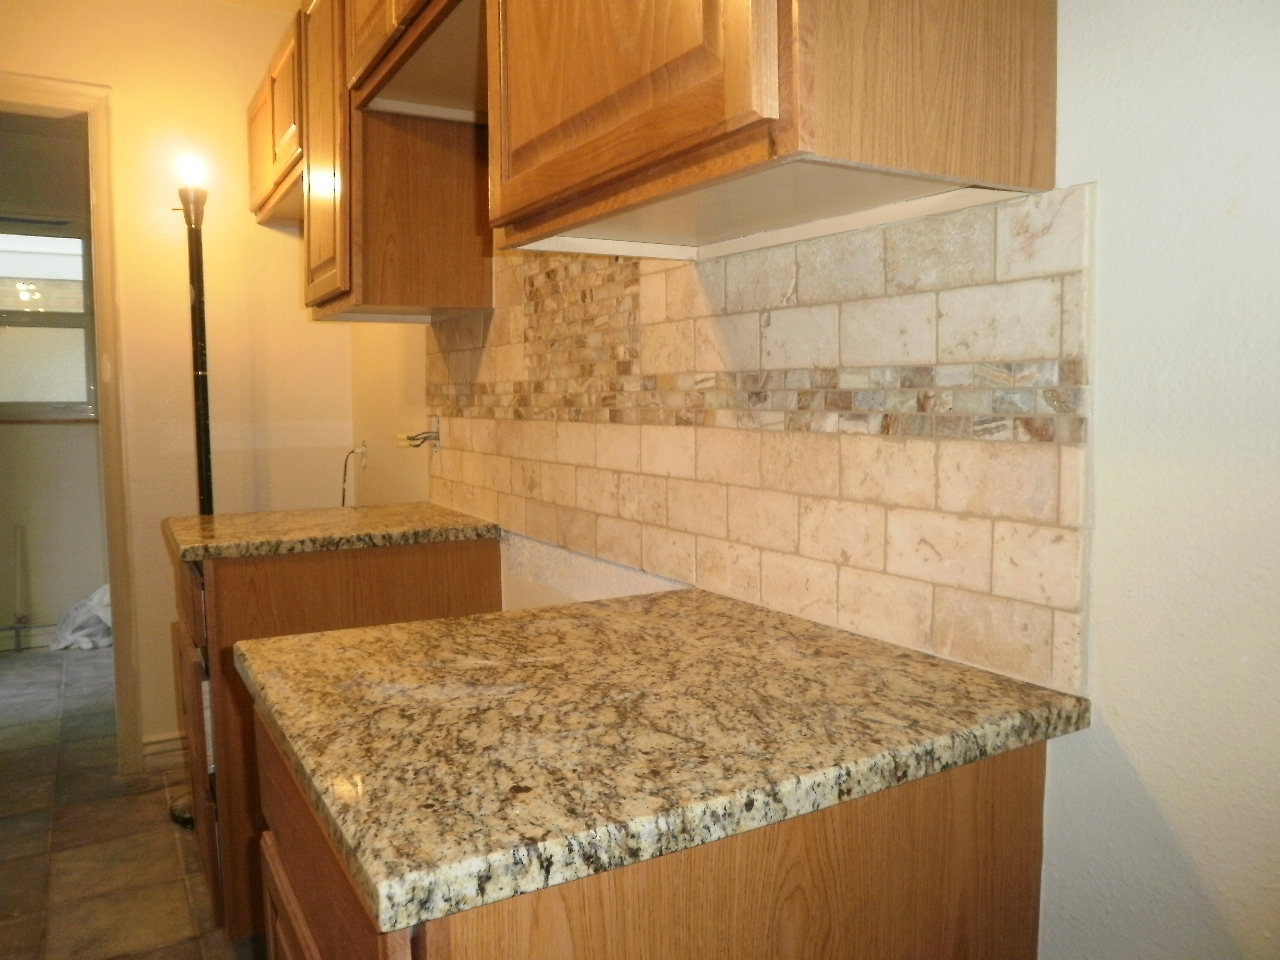 Onyx Kitchen Backsplash Painted Chairs Integrity Installations A Division Of Front